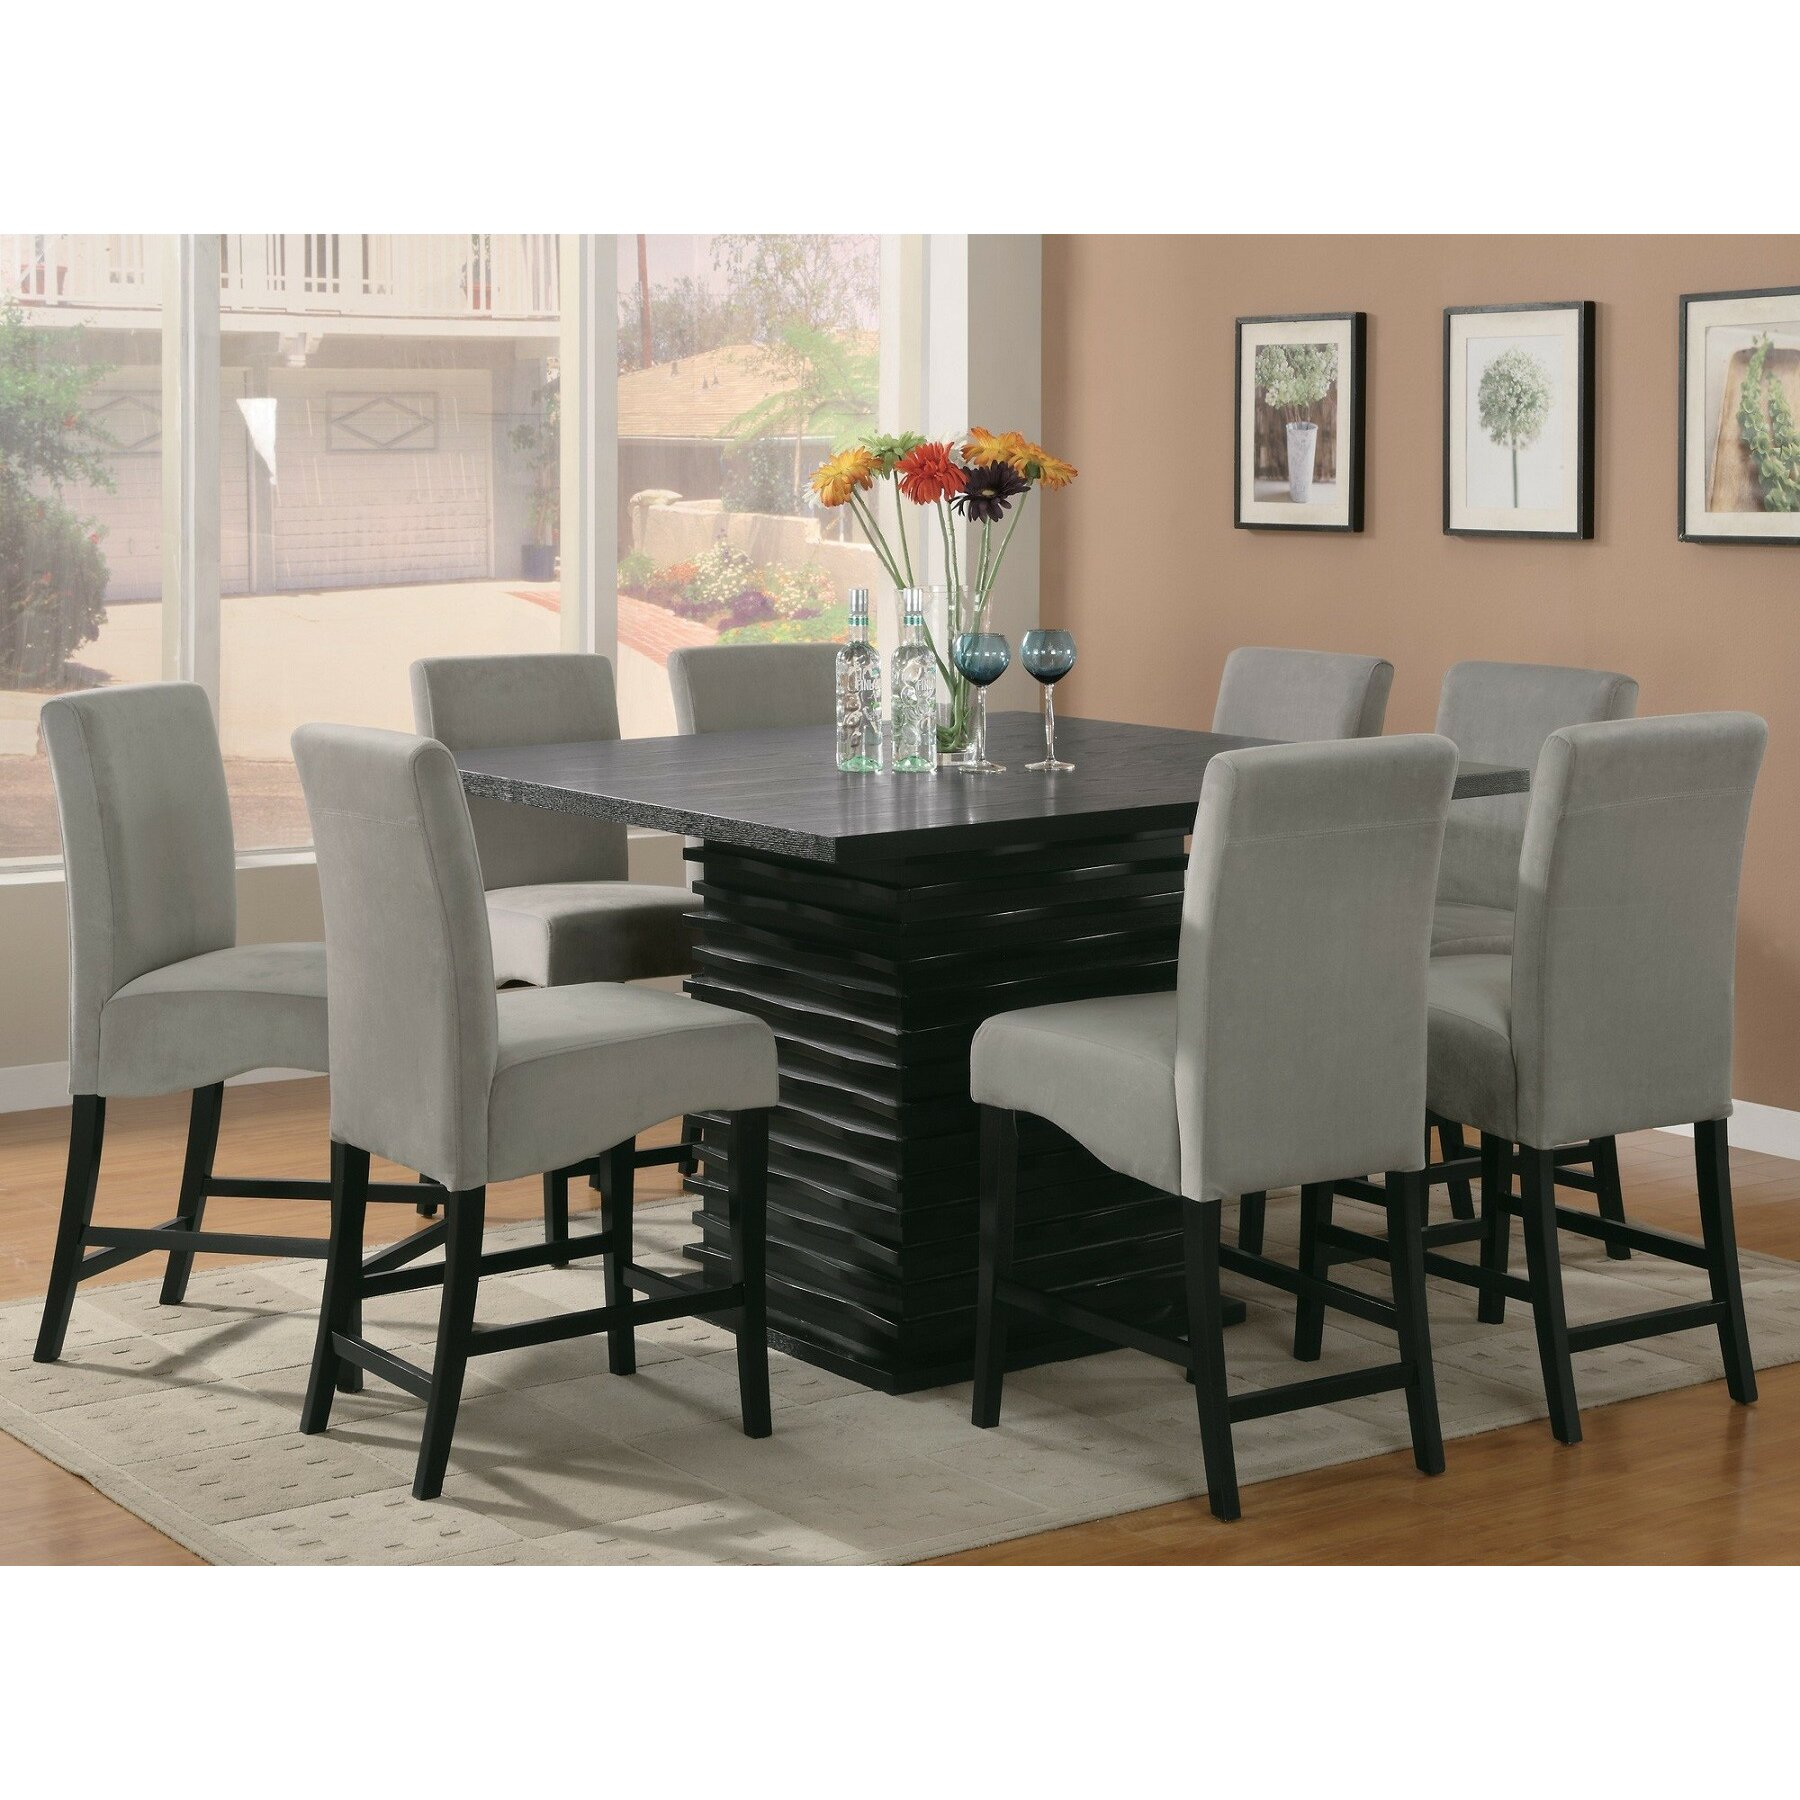 Jordan Furniture Dining Room Sets Inpretty Part 12